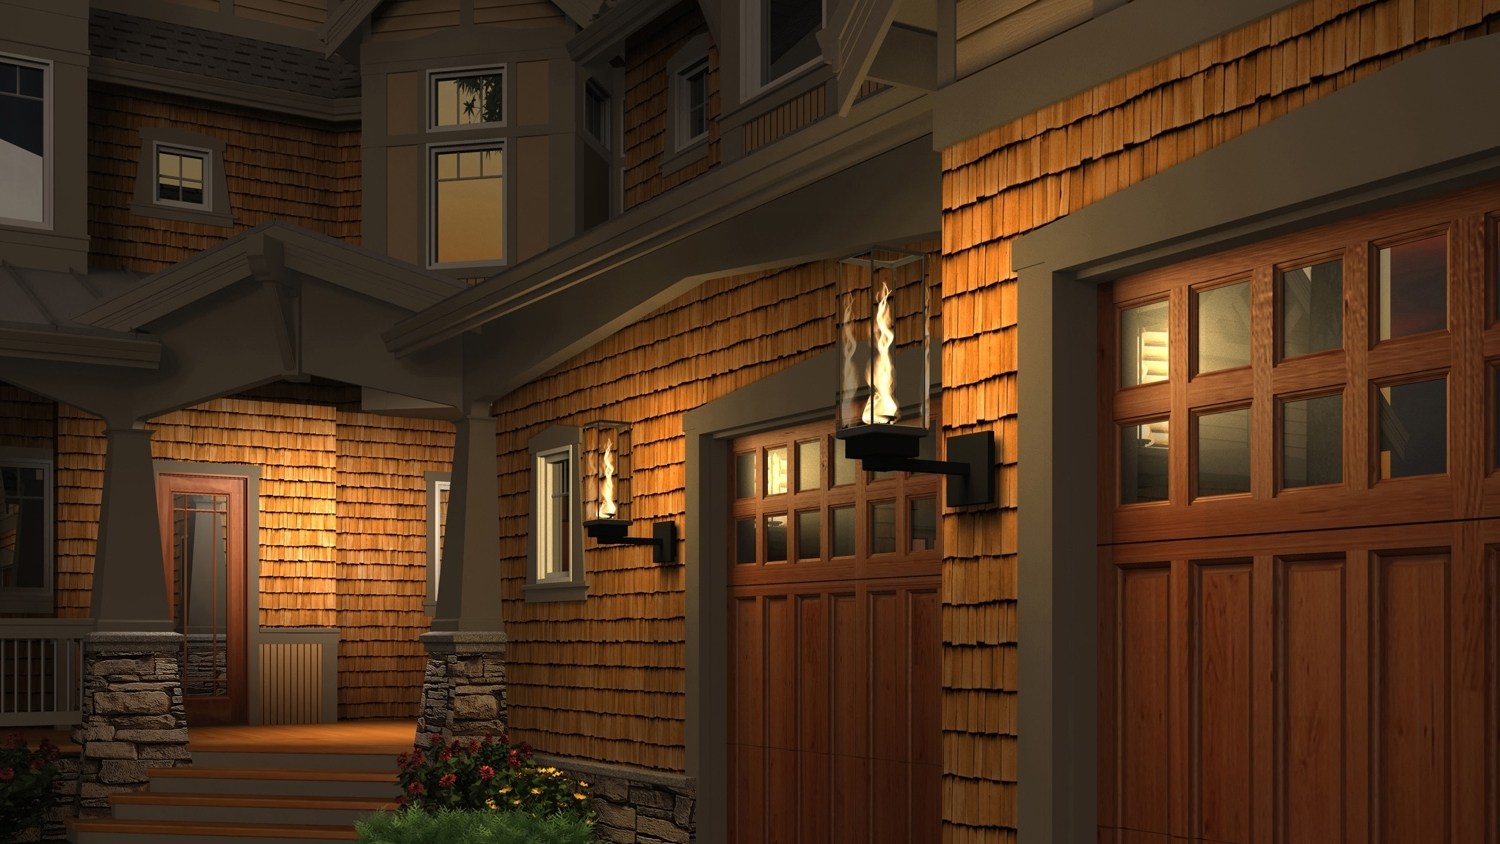 Tempest Torch Pertaining To Outdoor Wall Mount Gas Lights (View 18 of 20)